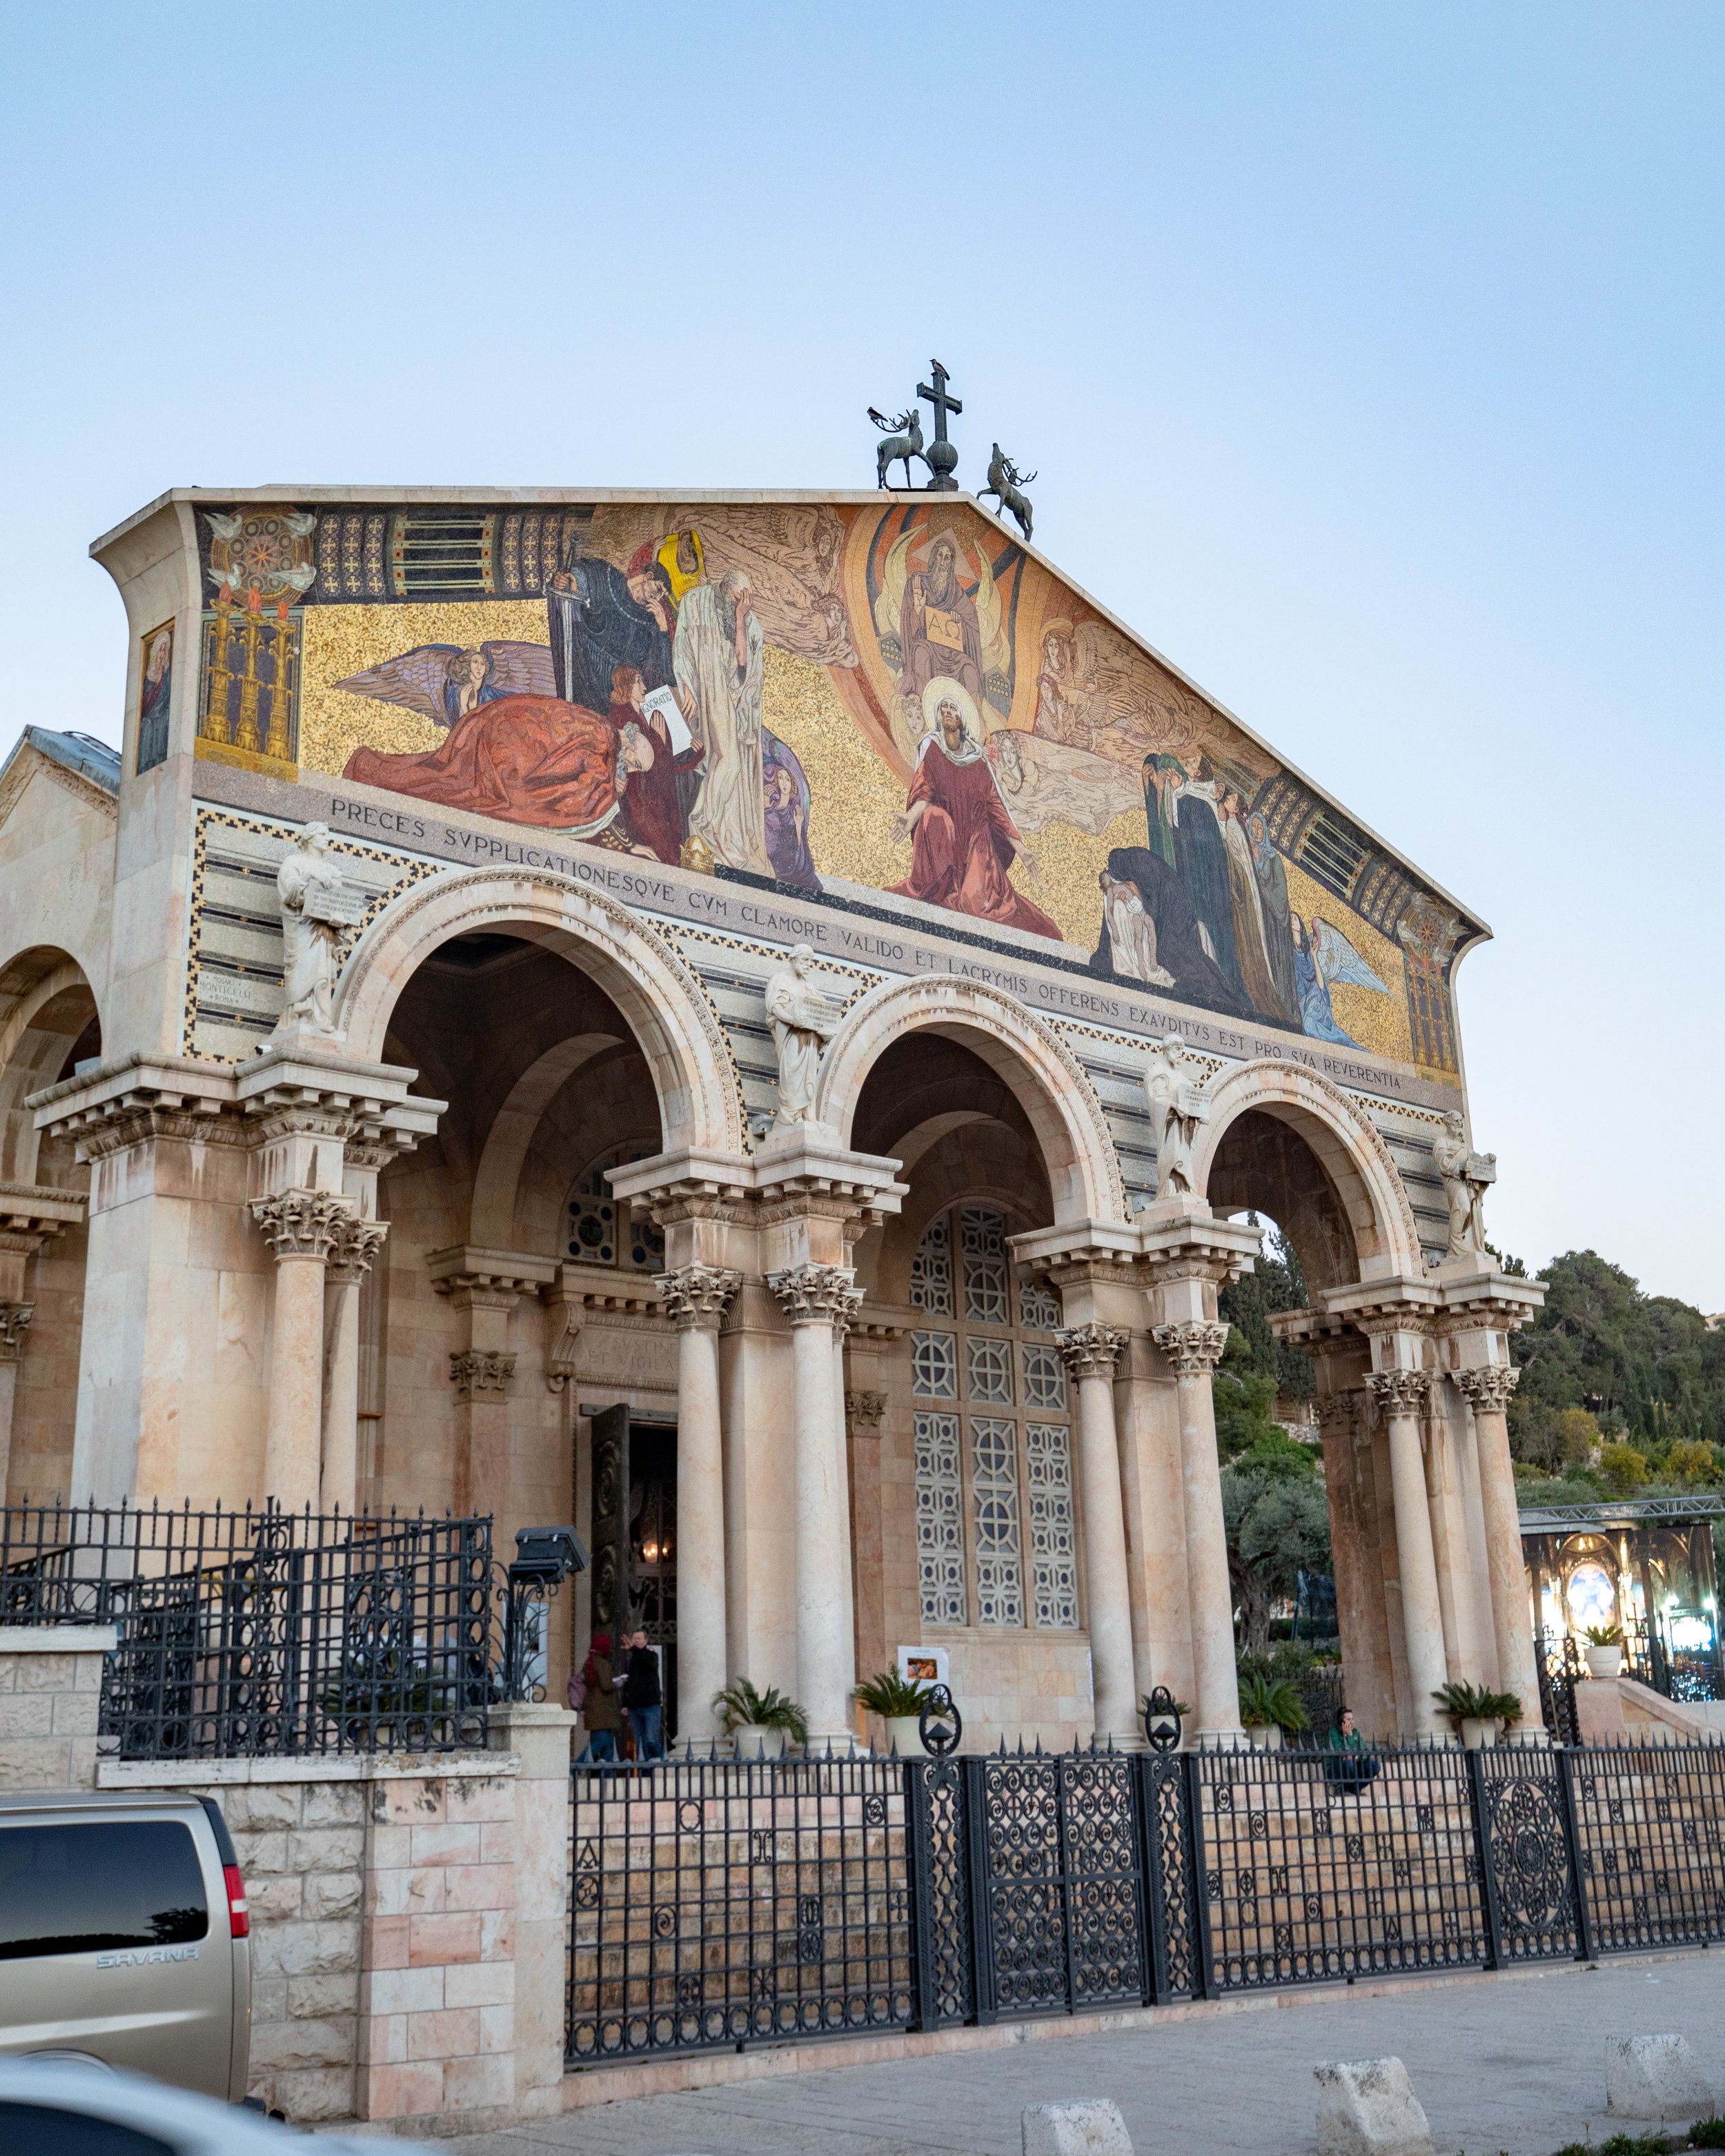 The Church of Nations in the Garden of Gethsemene